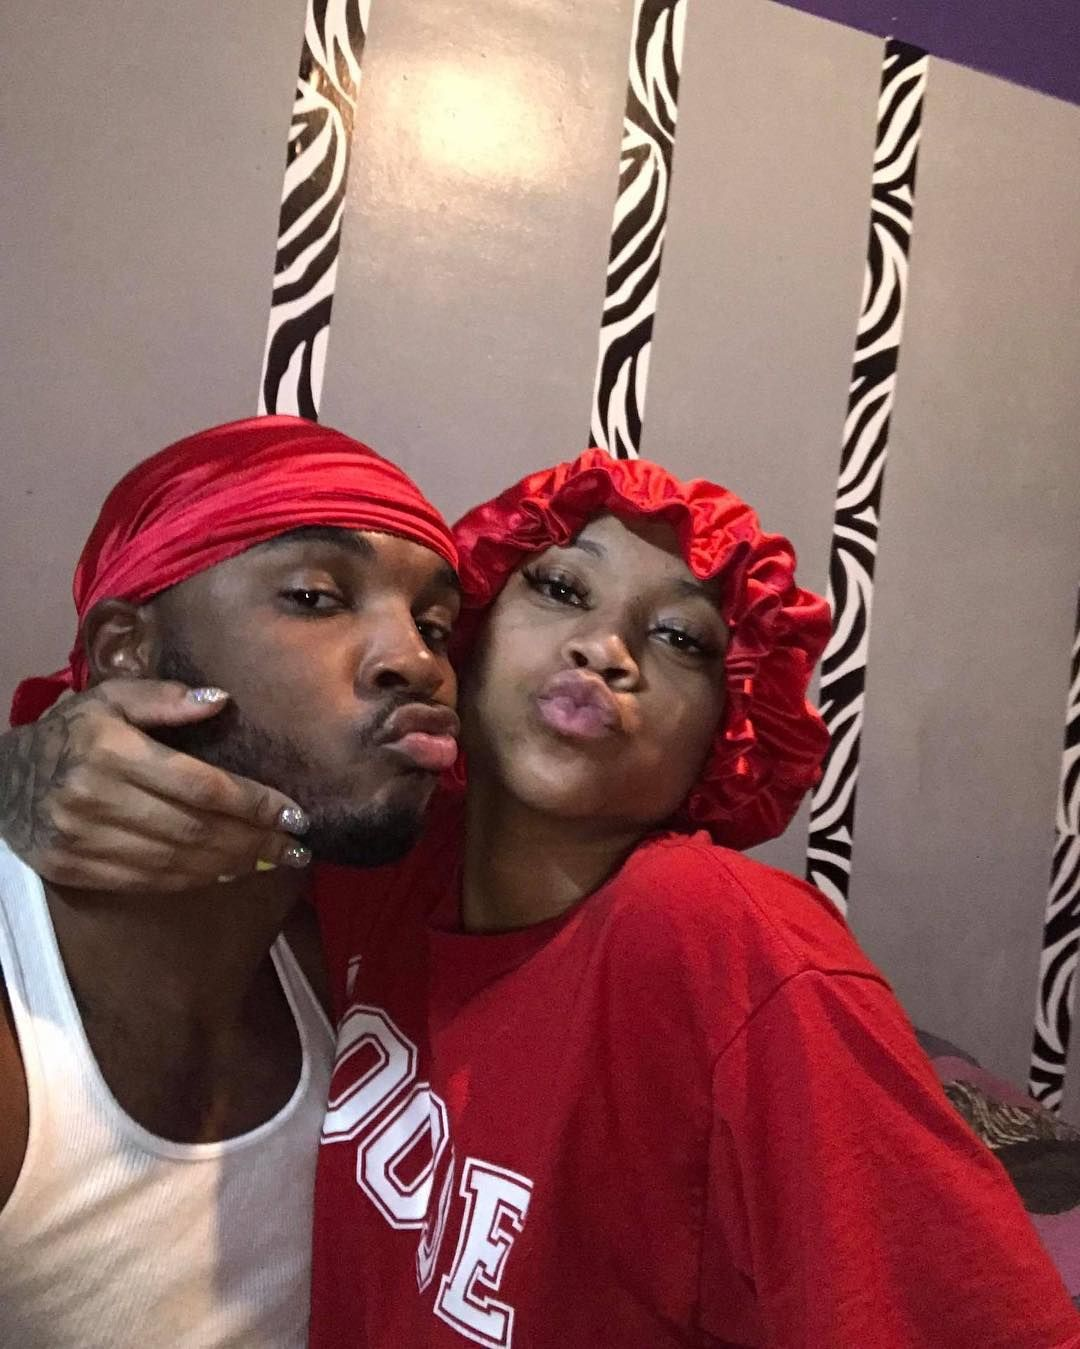 Durag and bonnet set by Posh and Lace, matching bonnet and durag set, couple goals, bae goals, African American couples, durag and nails, red bonnet a…